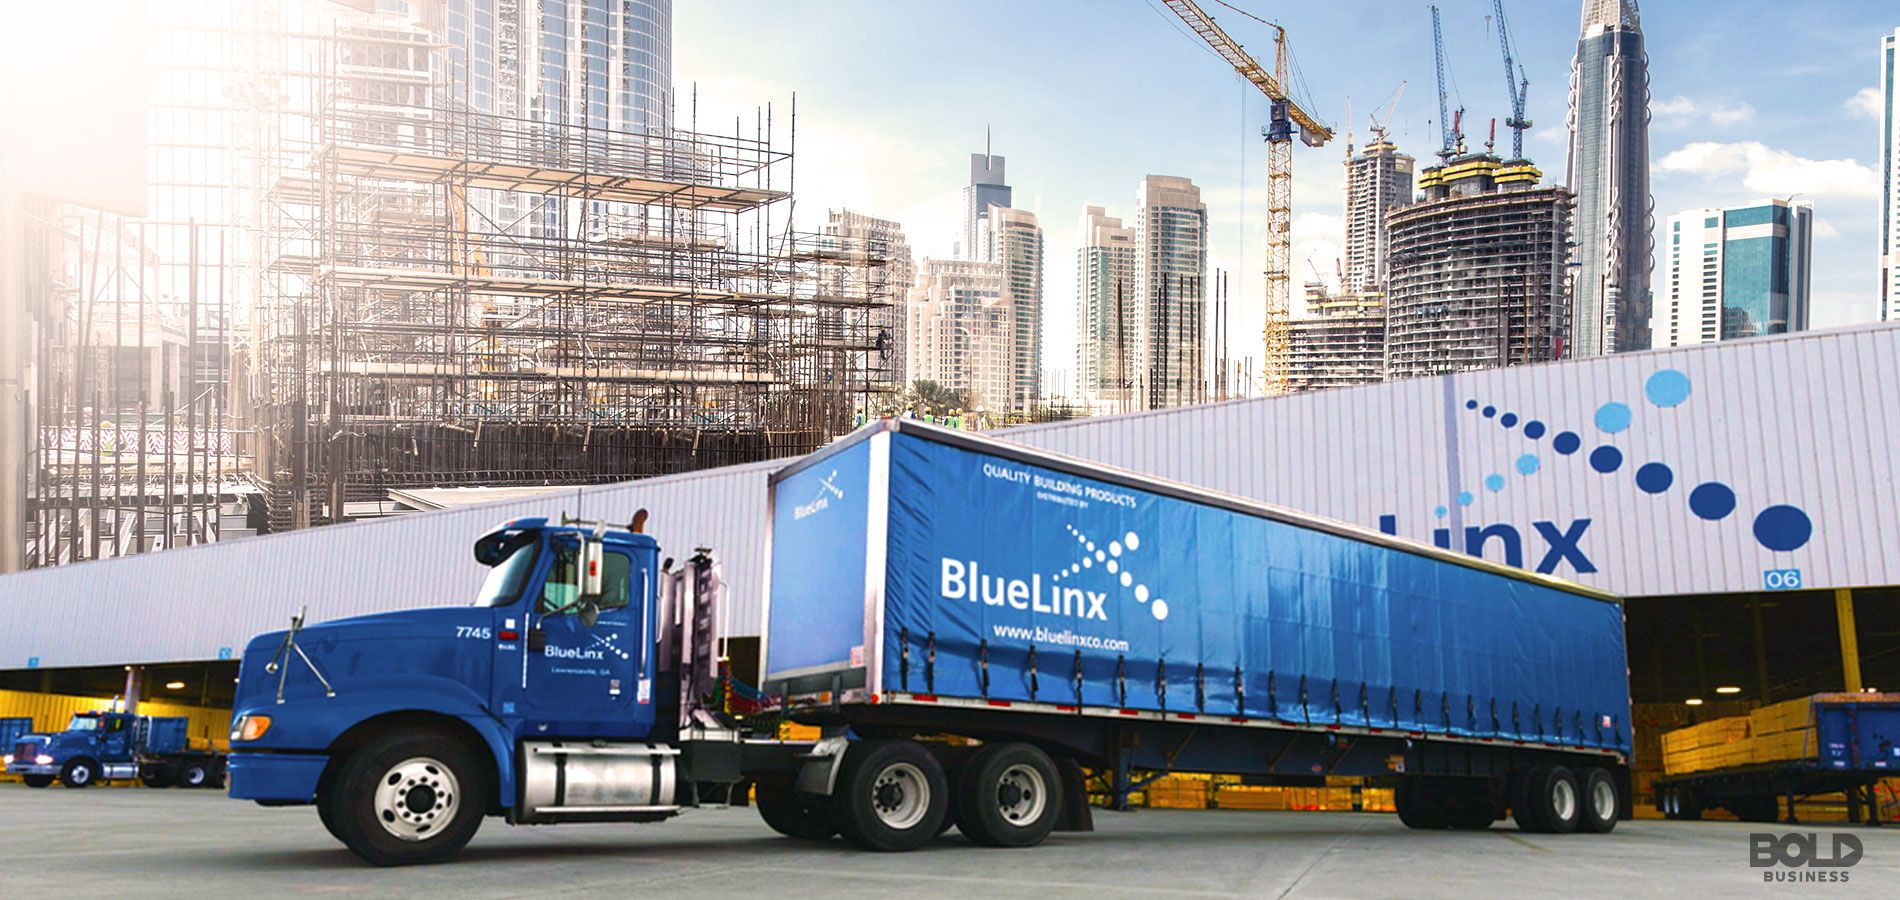 BlueLinx Building Supplies Truck with smart cities in background